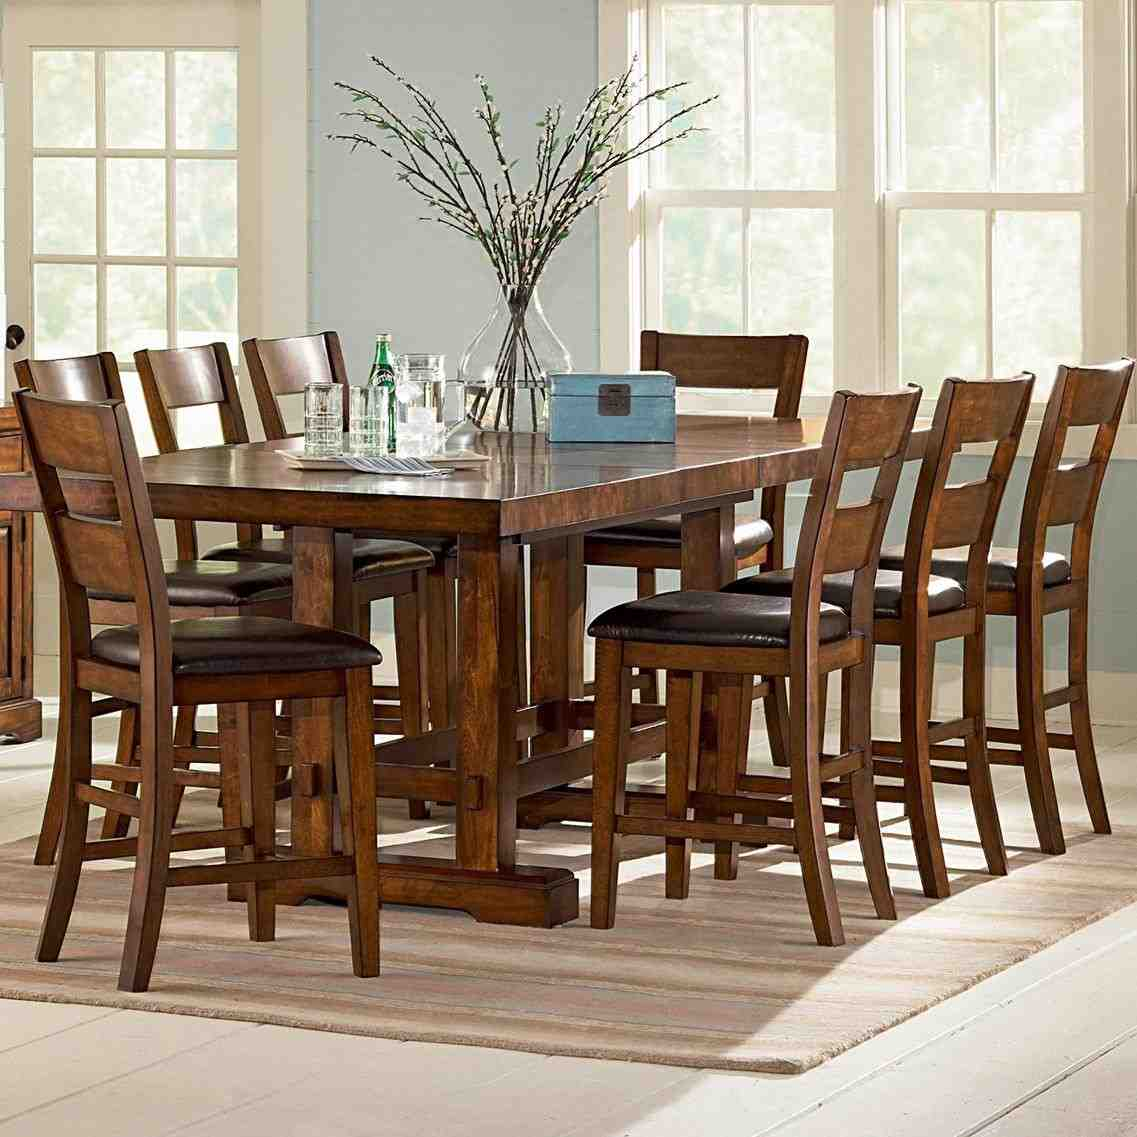 High Top Dining Table with 8 Chairs Home Furniture Design : High Top Dining Table with 8 Chairs from www.stagecoachdesigns.com size 1137 x 1137 jpeg 78kB